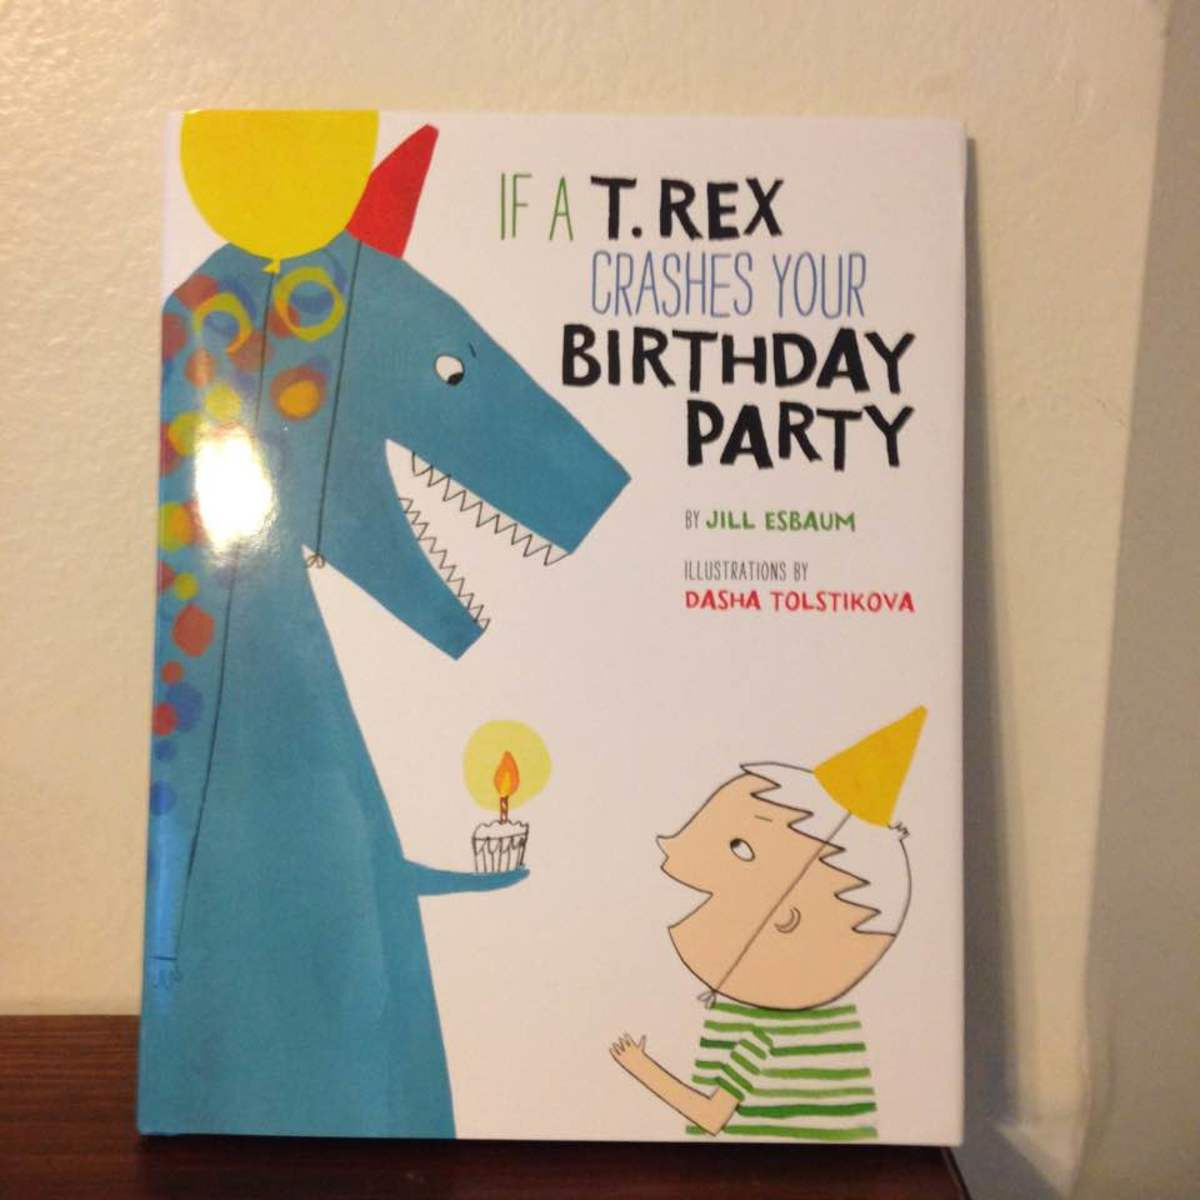 Would you invite a t-rex to your party?